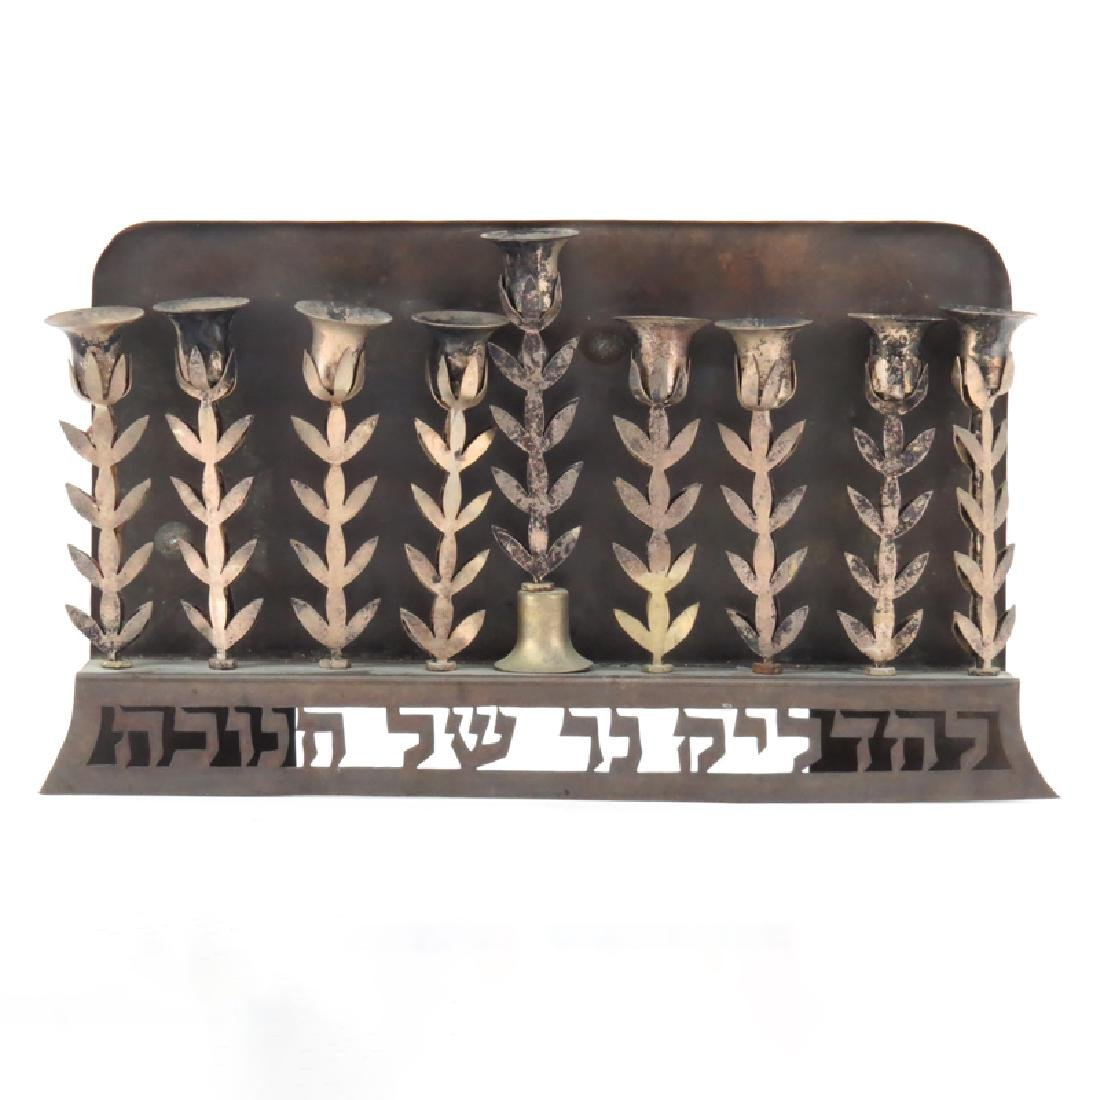 Vintage Judaica Floral Form Menorah. Unsigned. Wear and